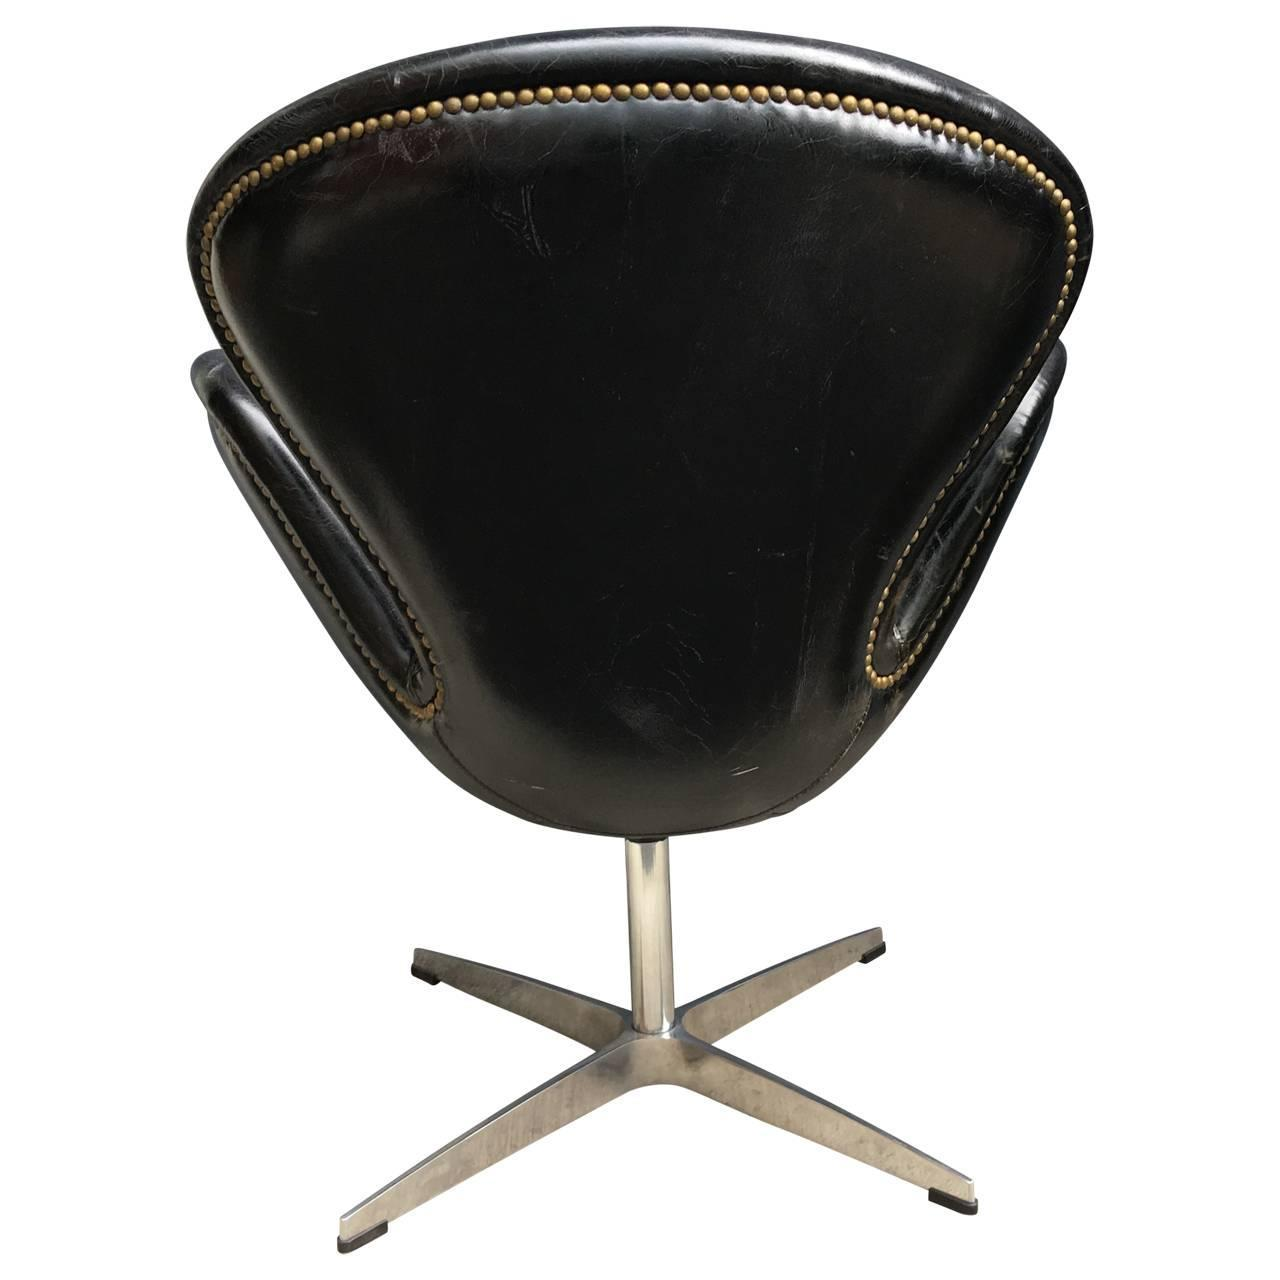 arne jacobsen swan chair french style leather at 1stdibs